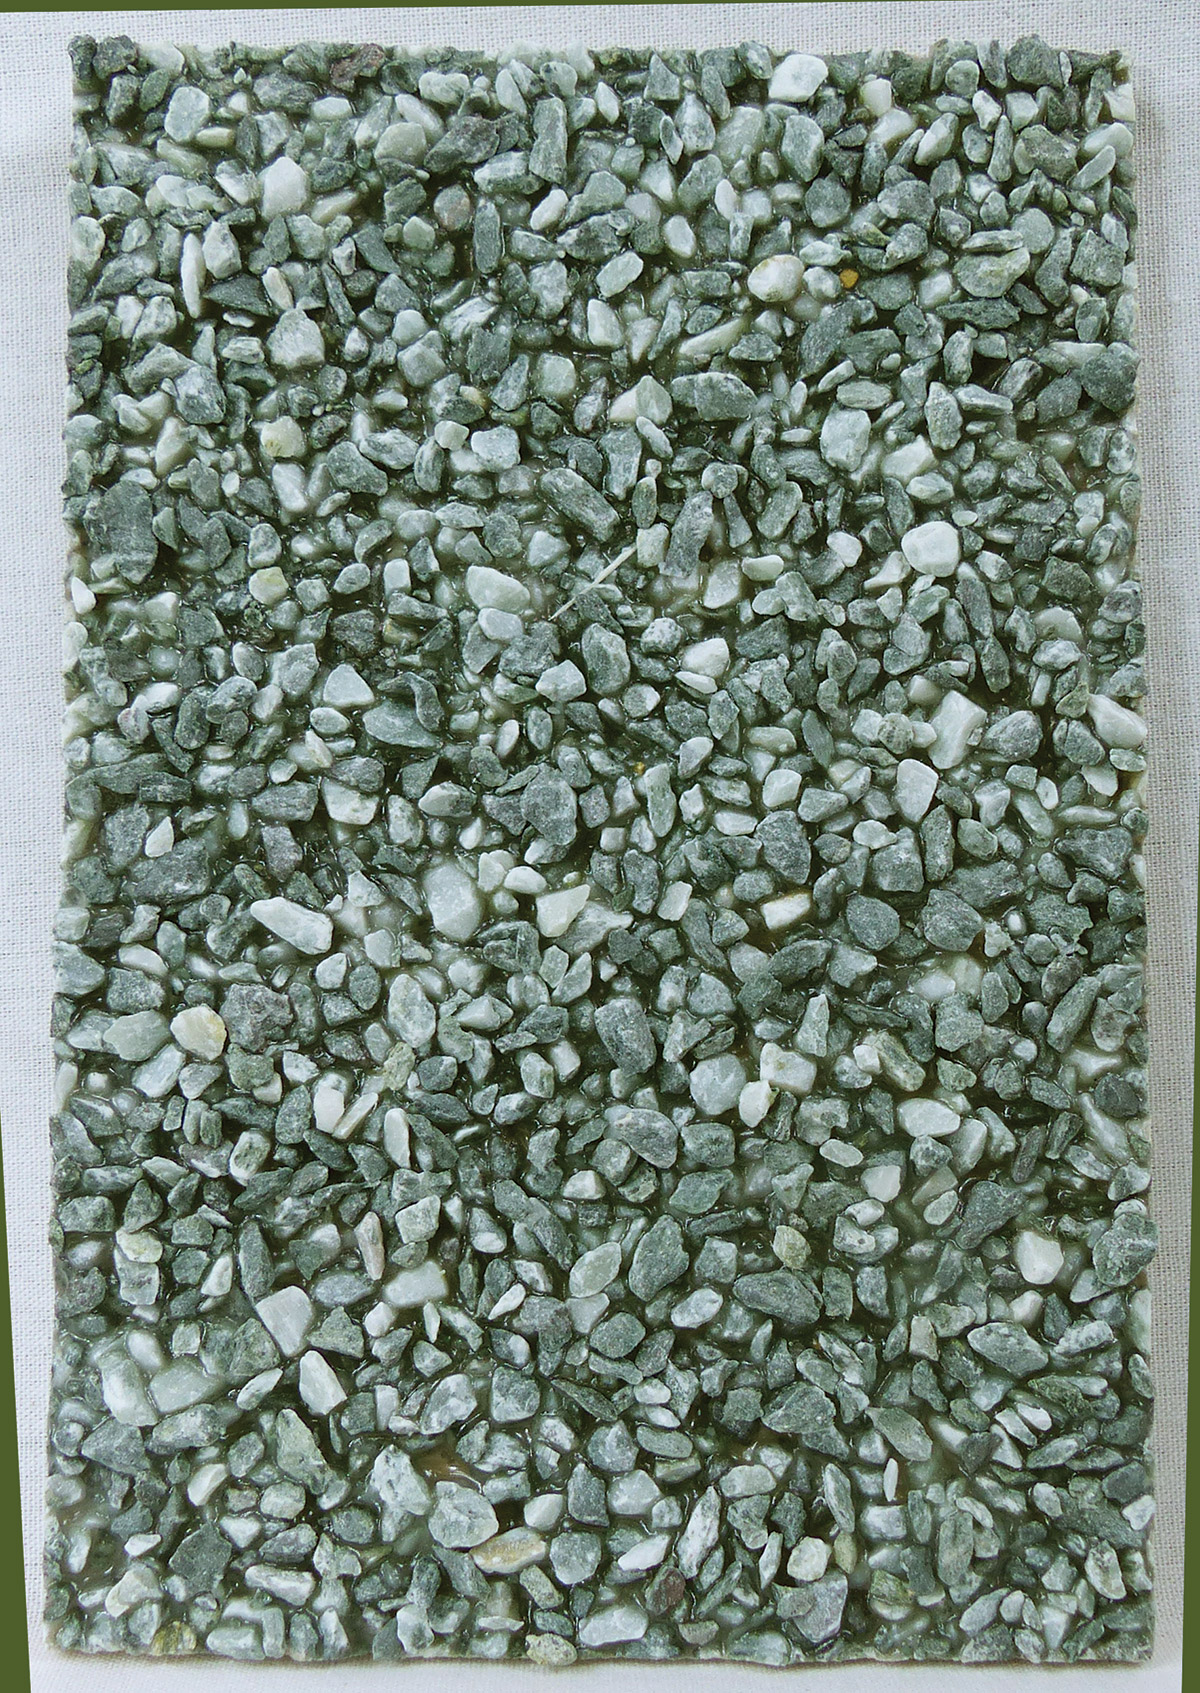 Green marble aggregate - Granulometry 1-2 / 2-5